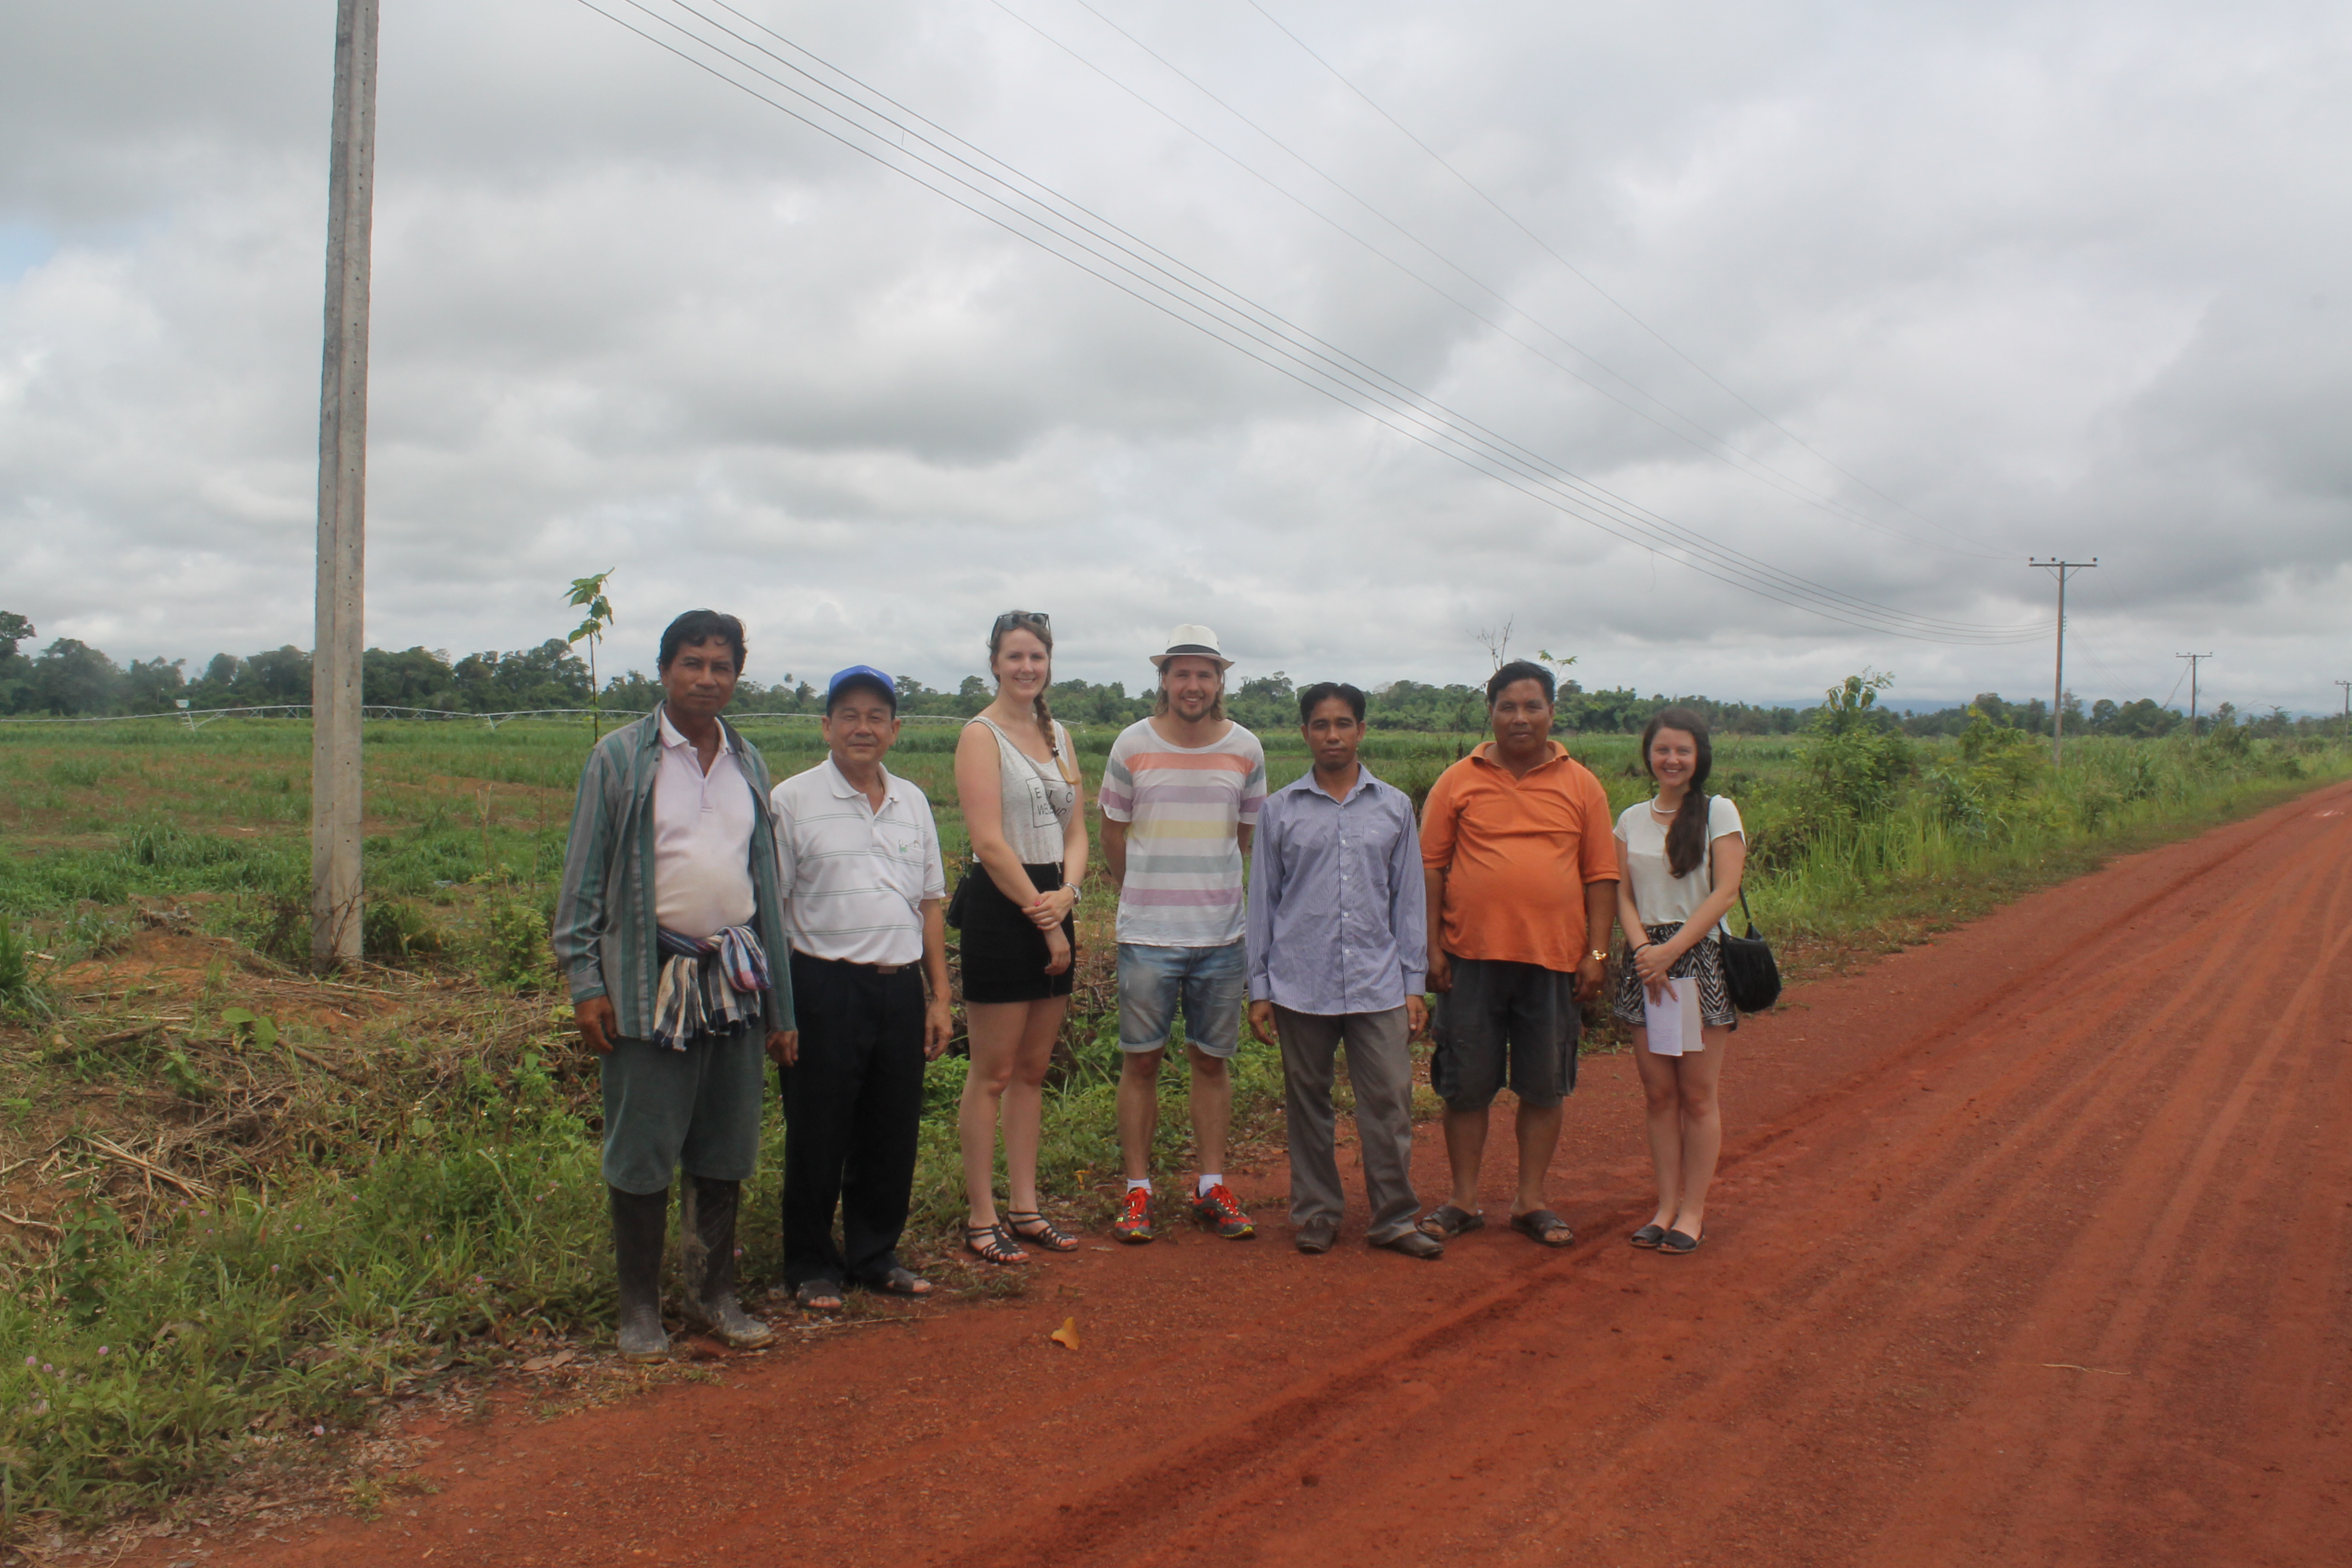 Picture: Students in Laos, project is run by Janna Forsén, Carl Gunnarsson, Arthur Noort and Johanna Bjarsch Follin 2014.